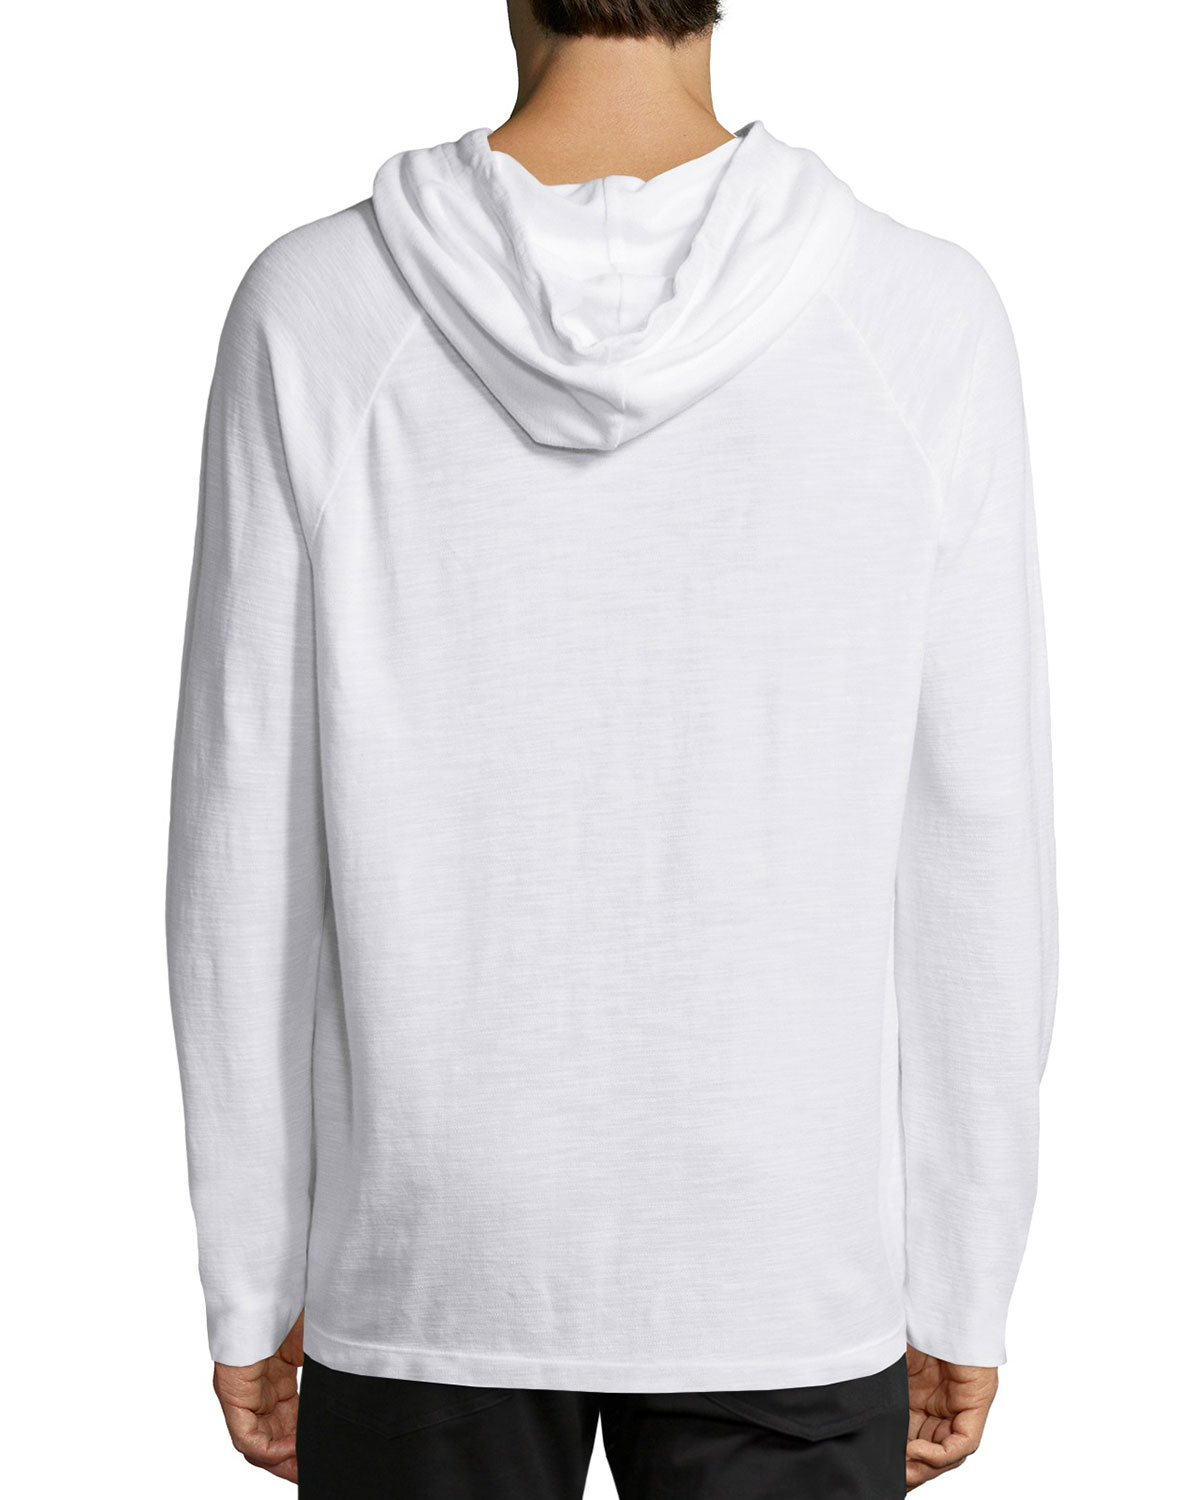 ec68a05a8d Lyst - James Perse Long-sleeve Pique Knit Hoodie in White for Men